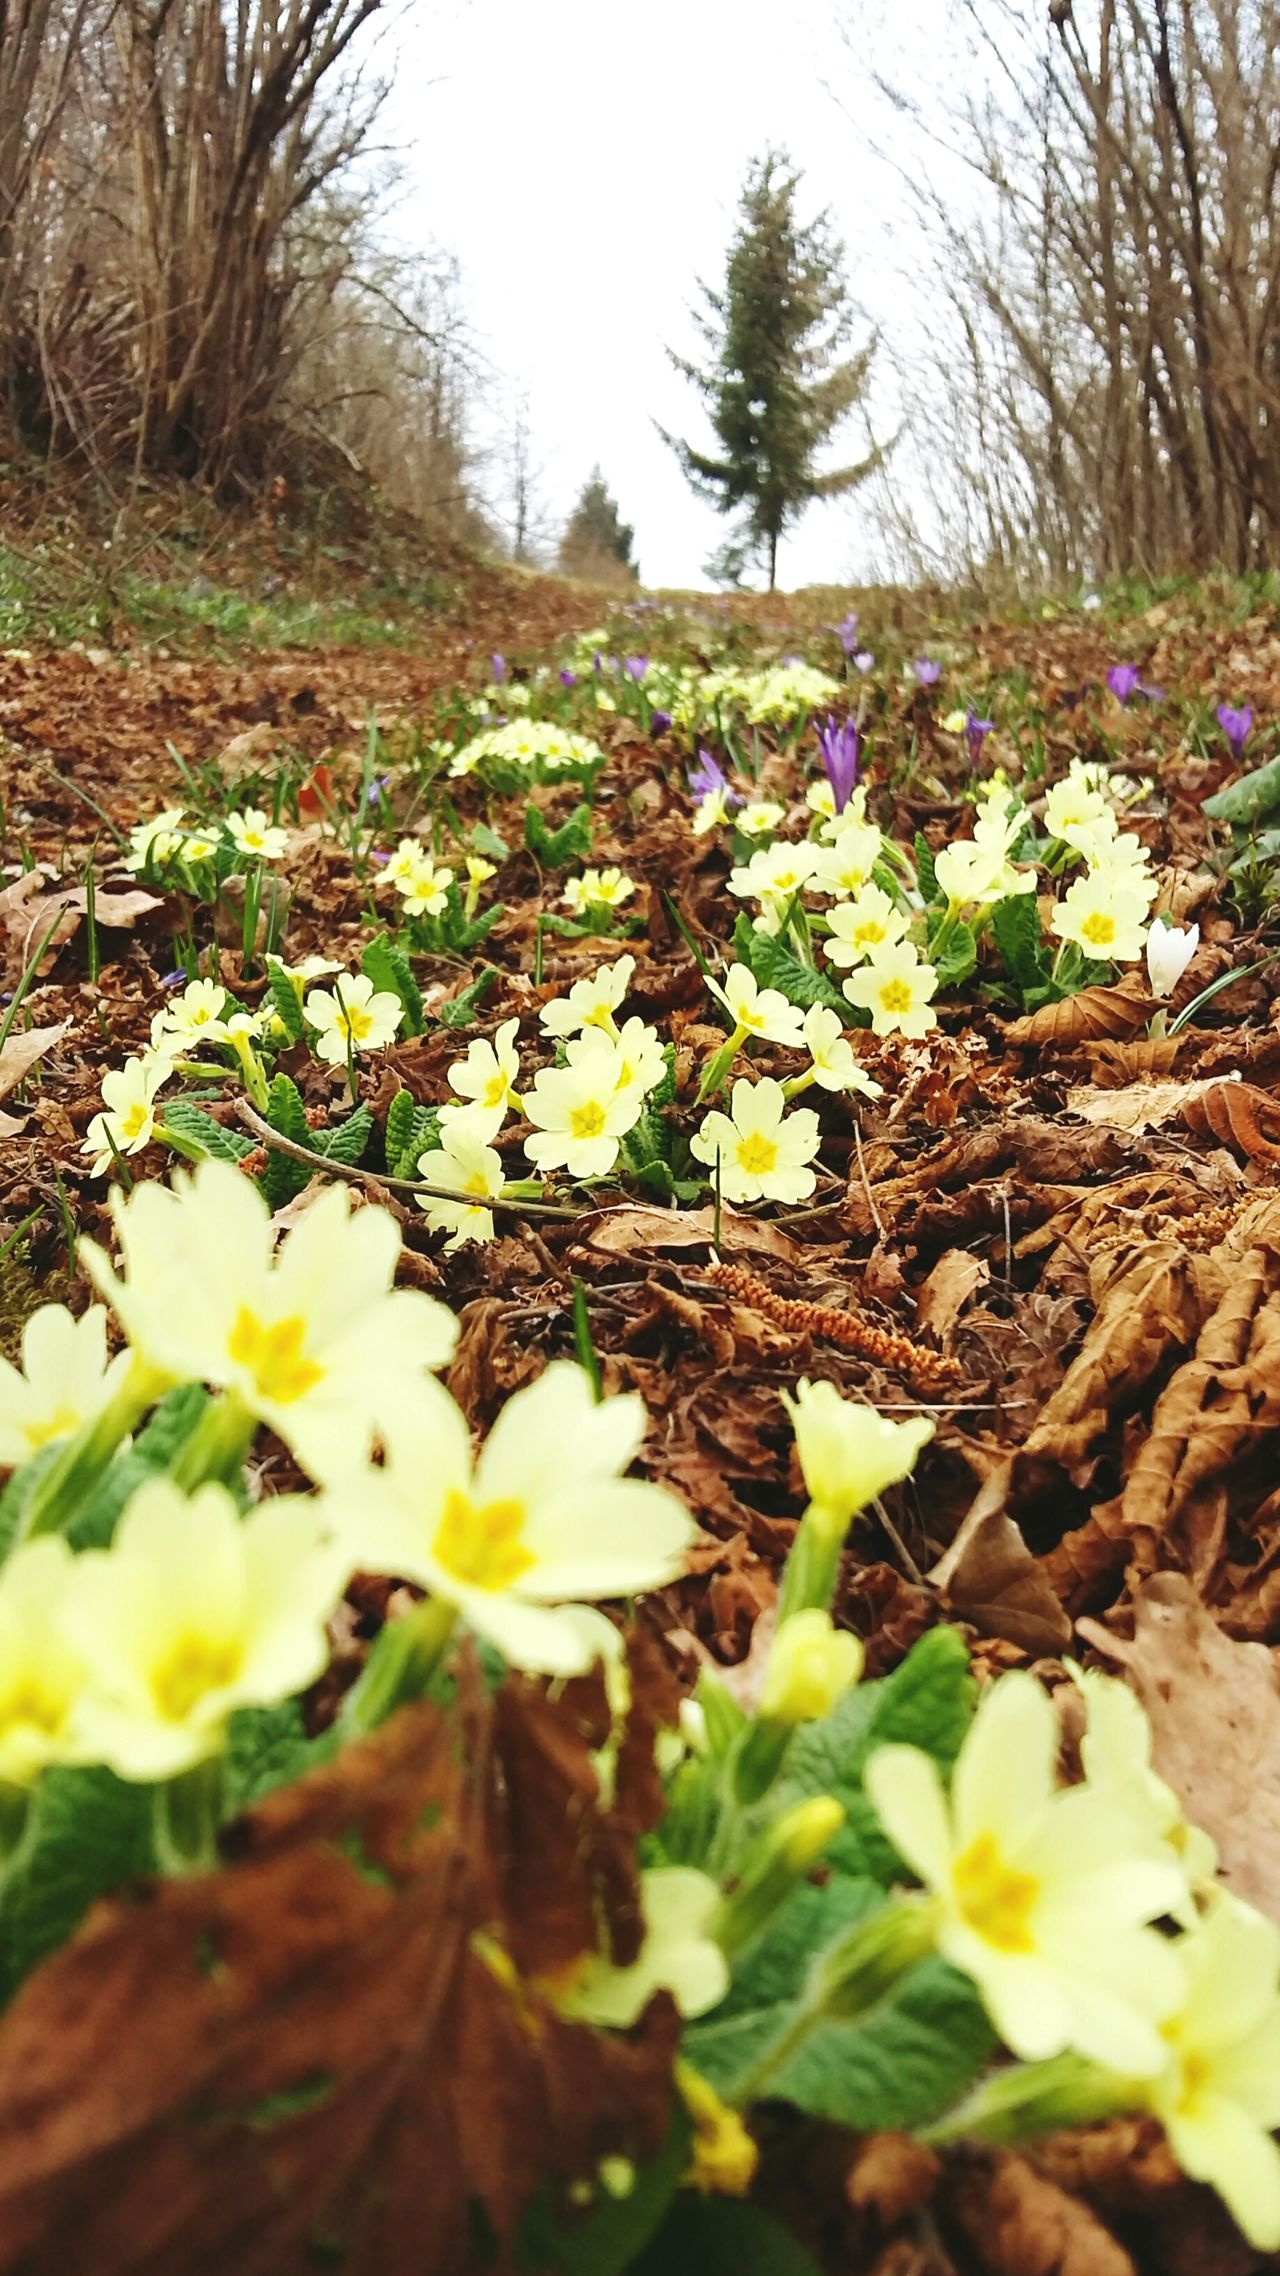 Growth Flower Nature Tree Beauty In Nature Beautiful Day No People Plant Scenics Fragility Outdoors Flower Head Freshness Close-up Day Primroses Primrose